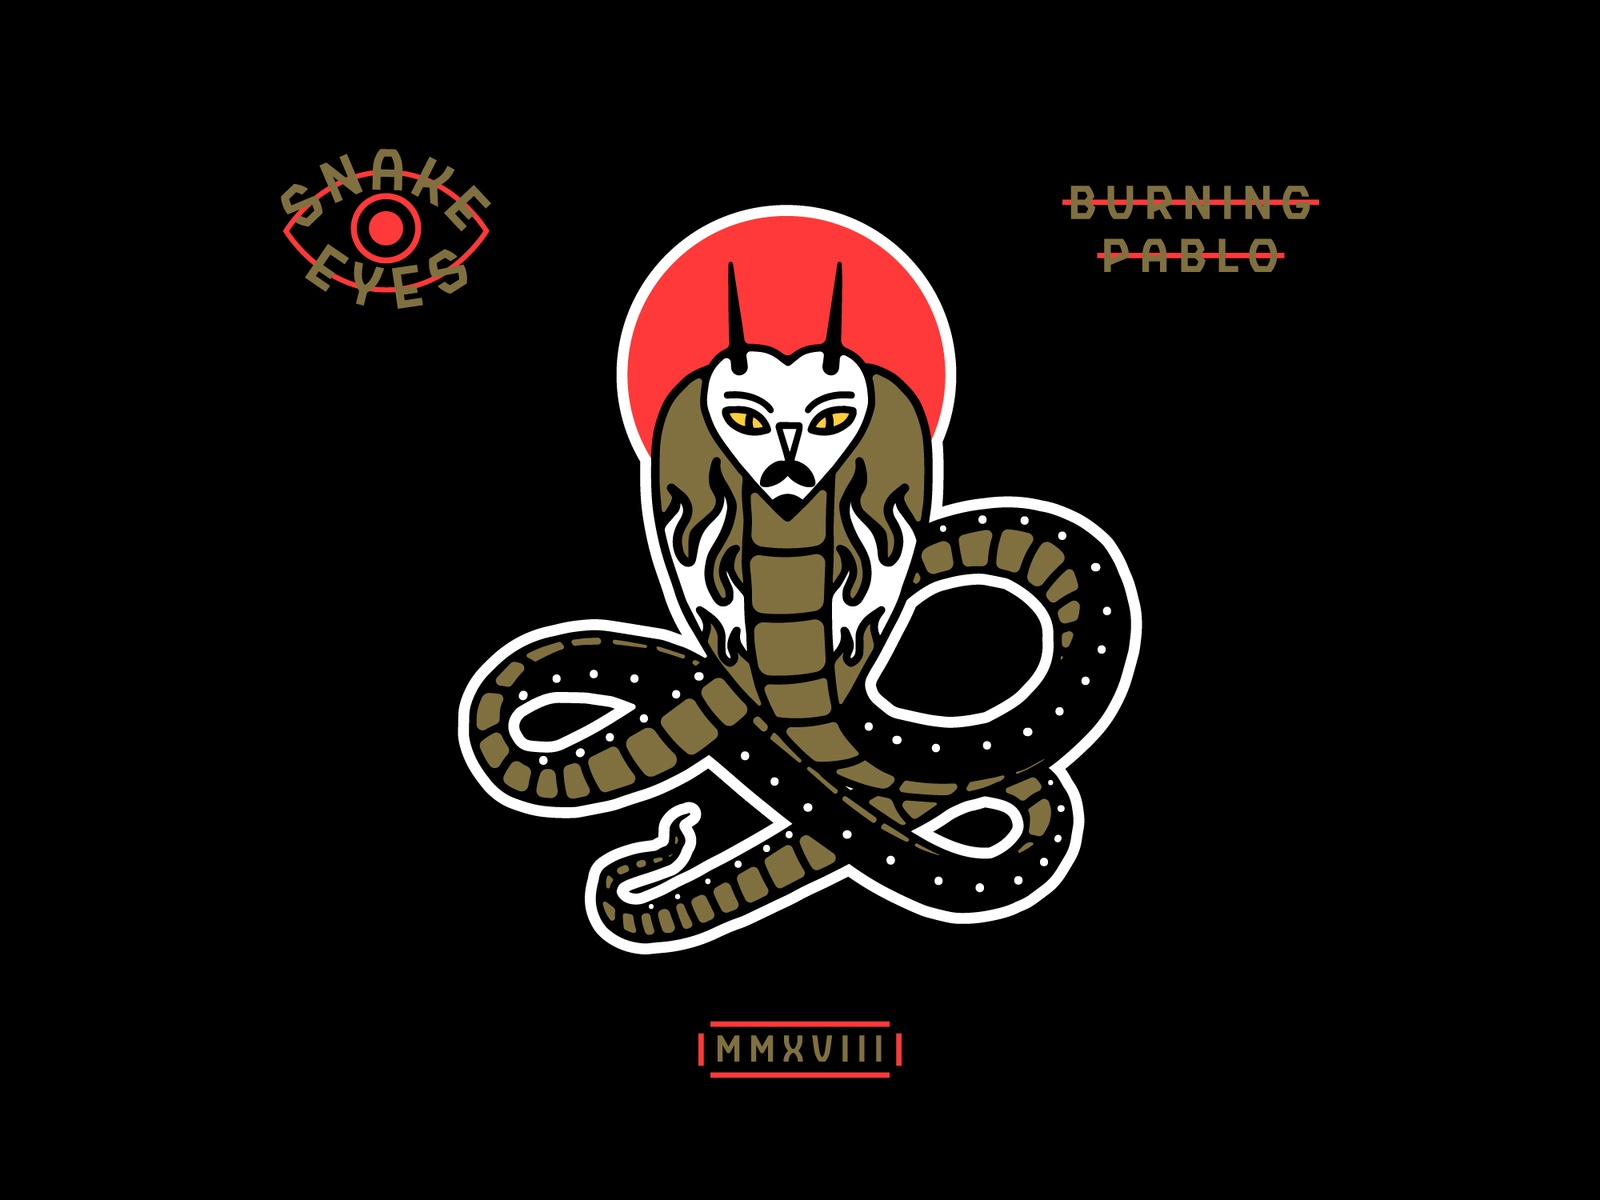 Snake Eyes By Burning Pablo Dribbble